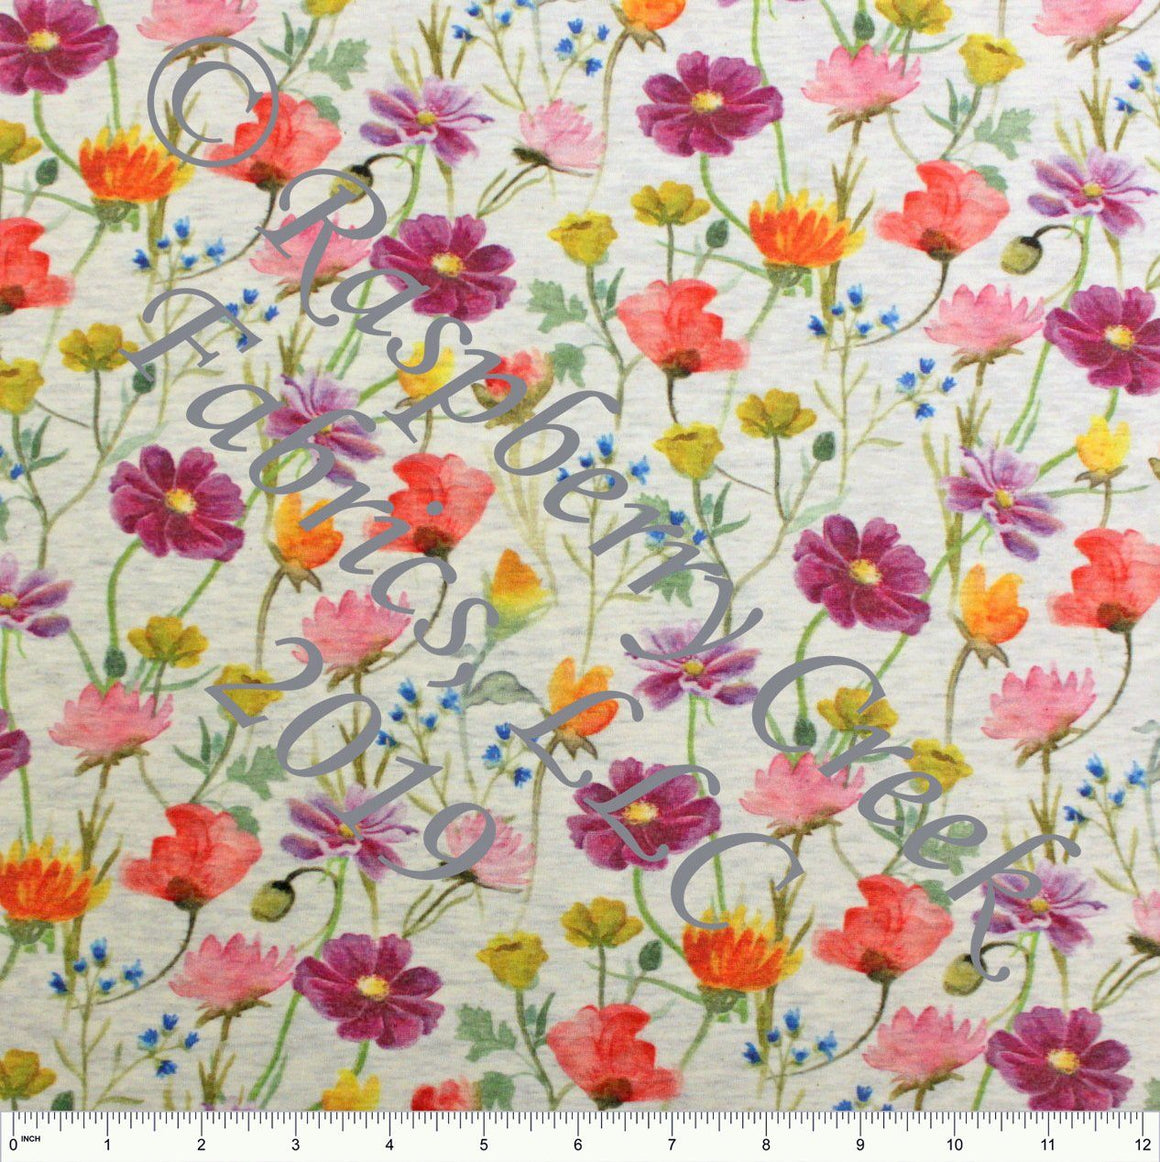 Purple Pink Orange Yellow and Green Wildflowers on Oatmeal 4 Way Stretch French Terry Knit Fabric PRE-ORDER FEB 2020 - Raspberry Creek Fabrics